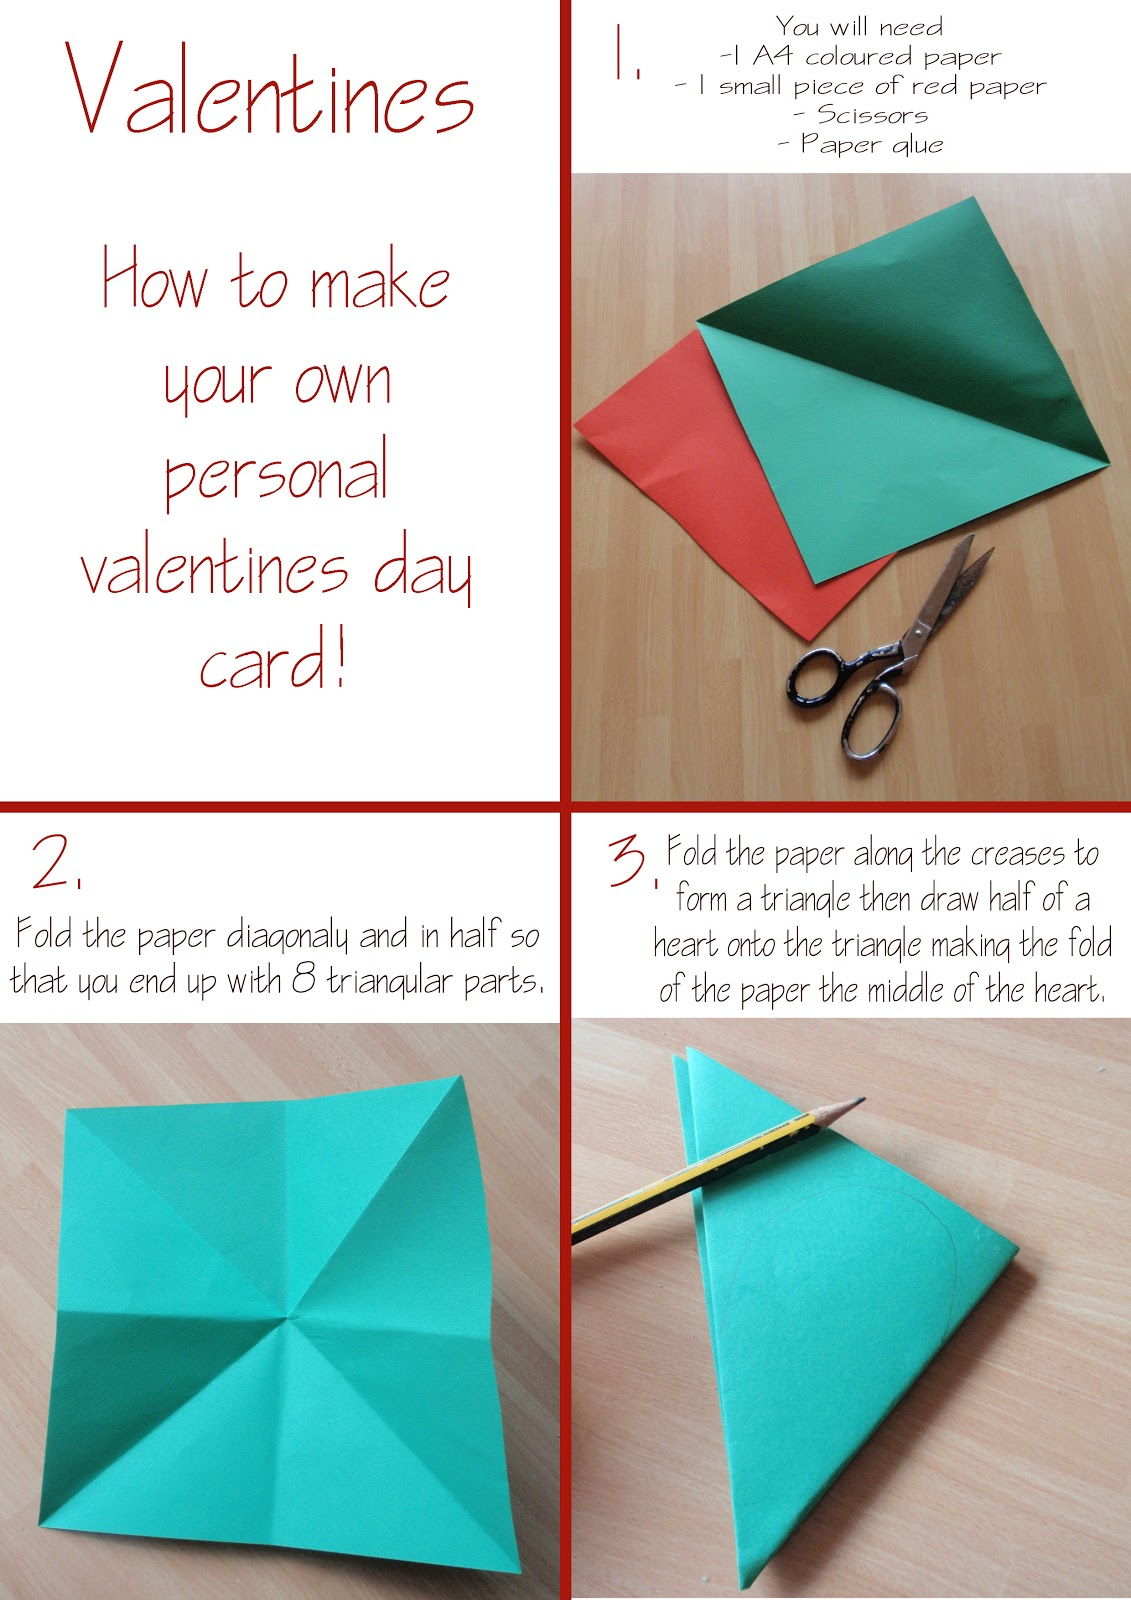 Pulmonate 39 s design architecture blog valentine 39 s day for How to make a good valentines day card